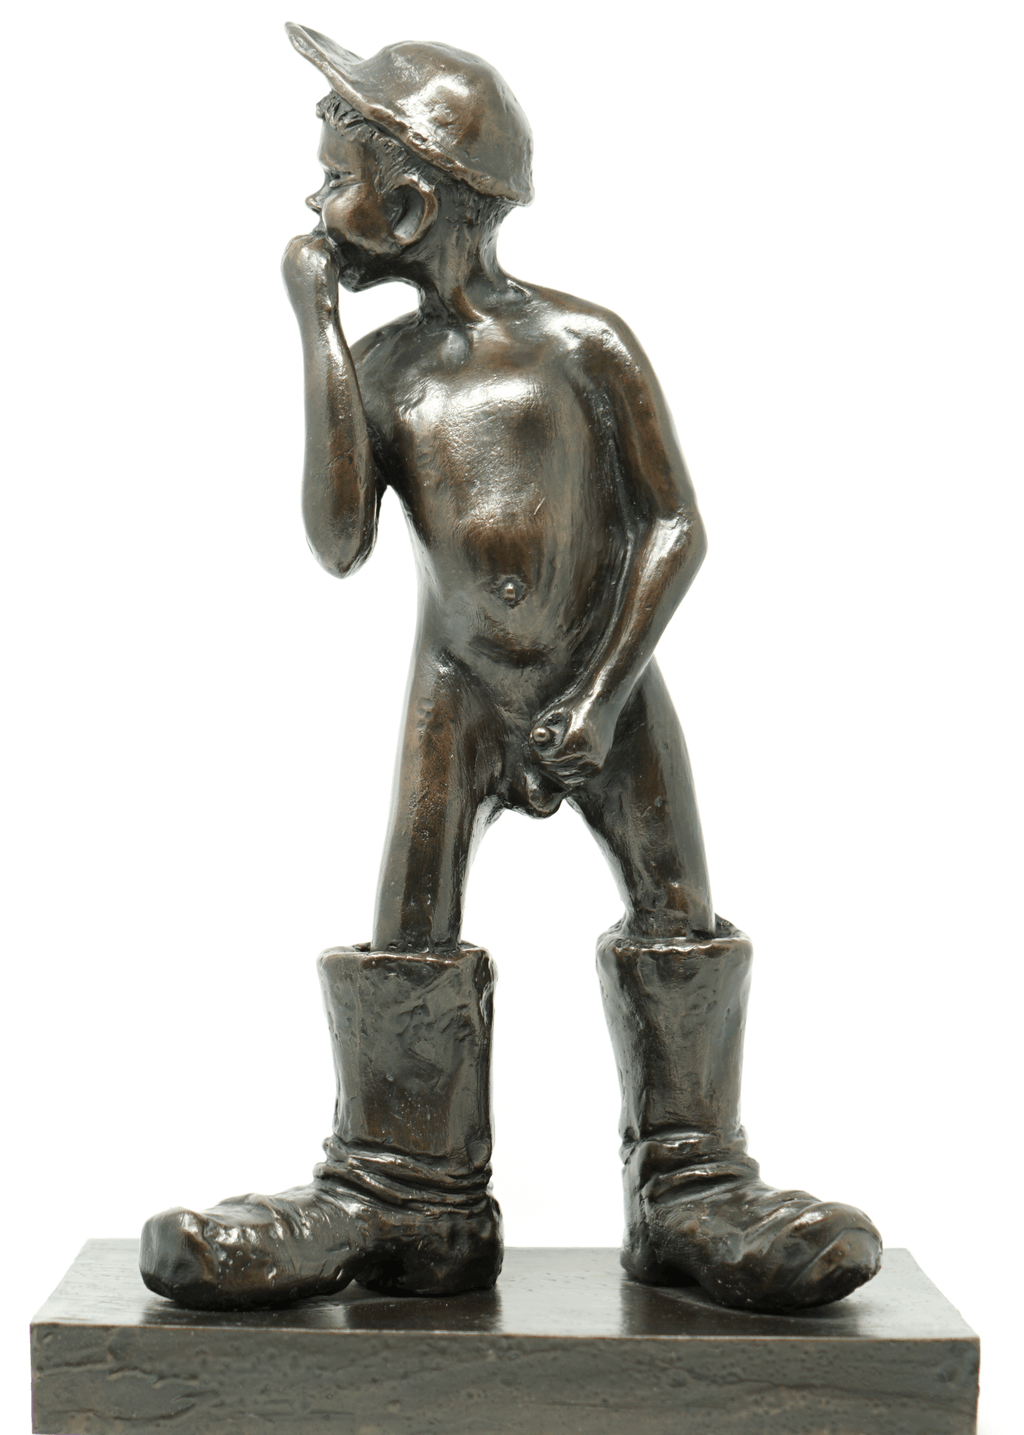 Canadian Bronze Sculpture by Alice Winant 1928-1989 Young Boy